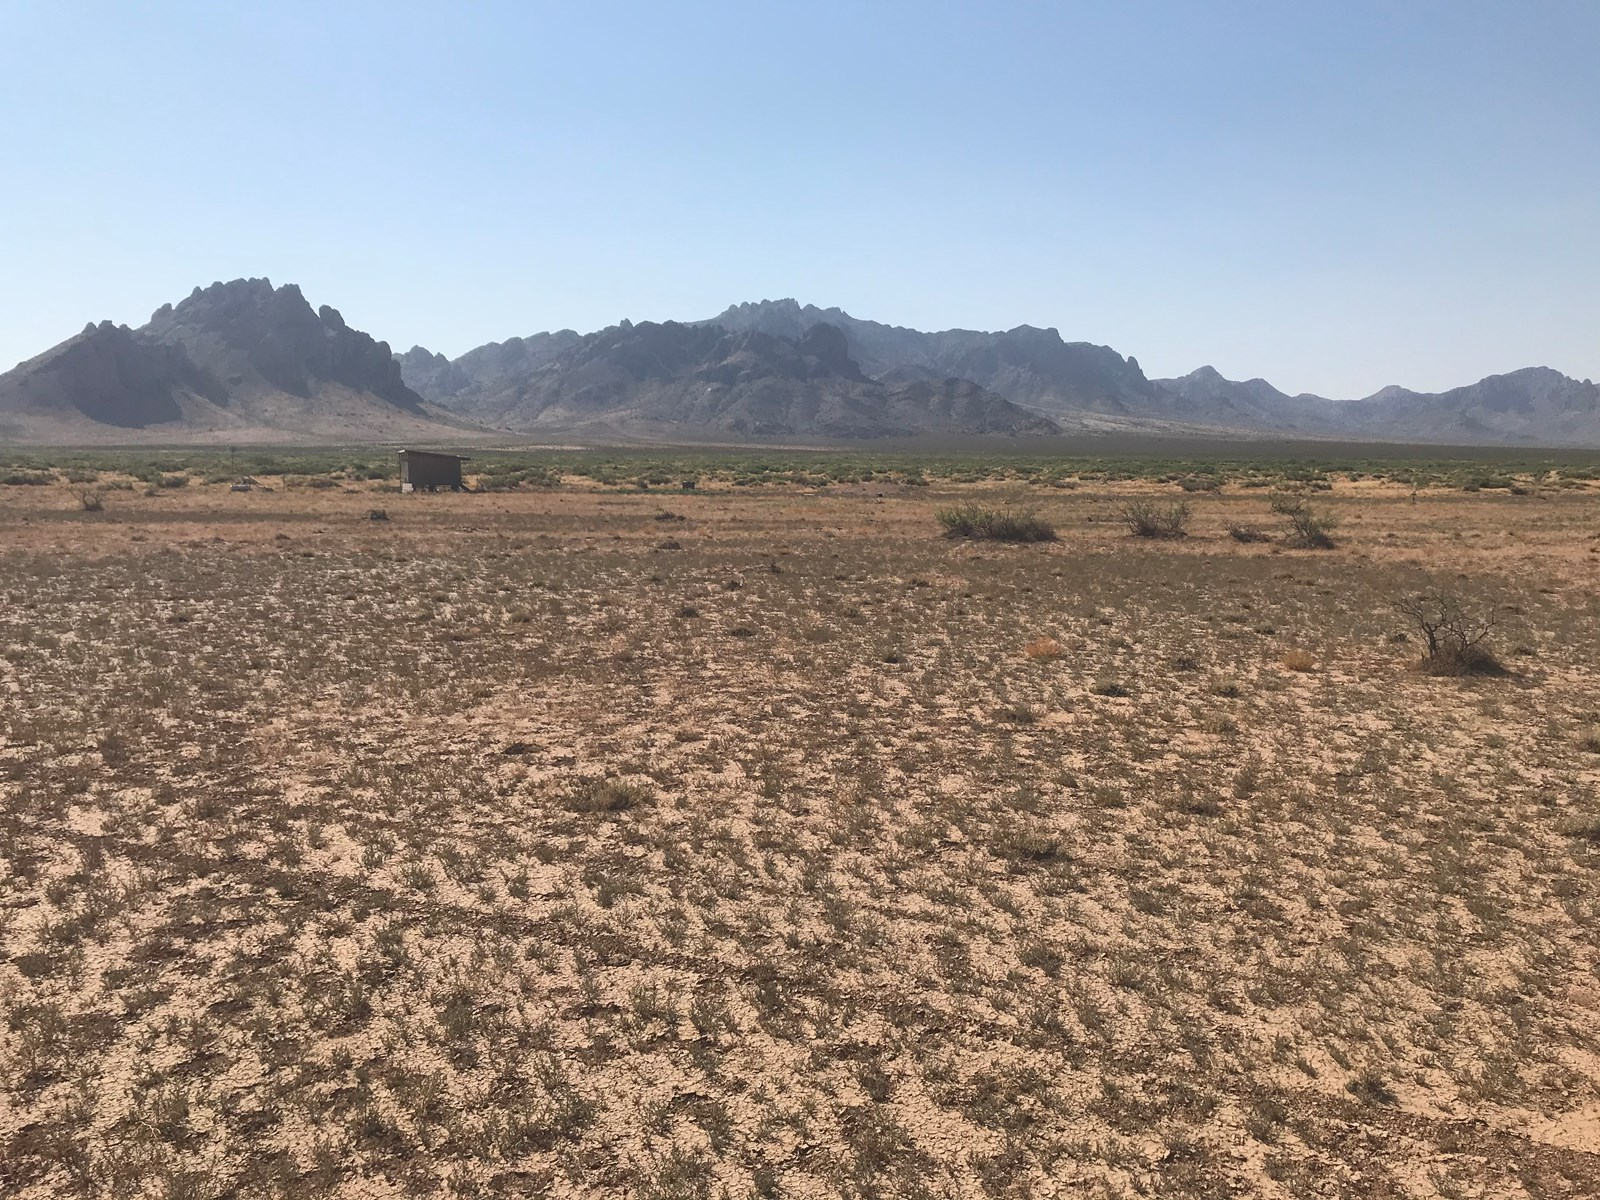 Land for sale in Deming NM